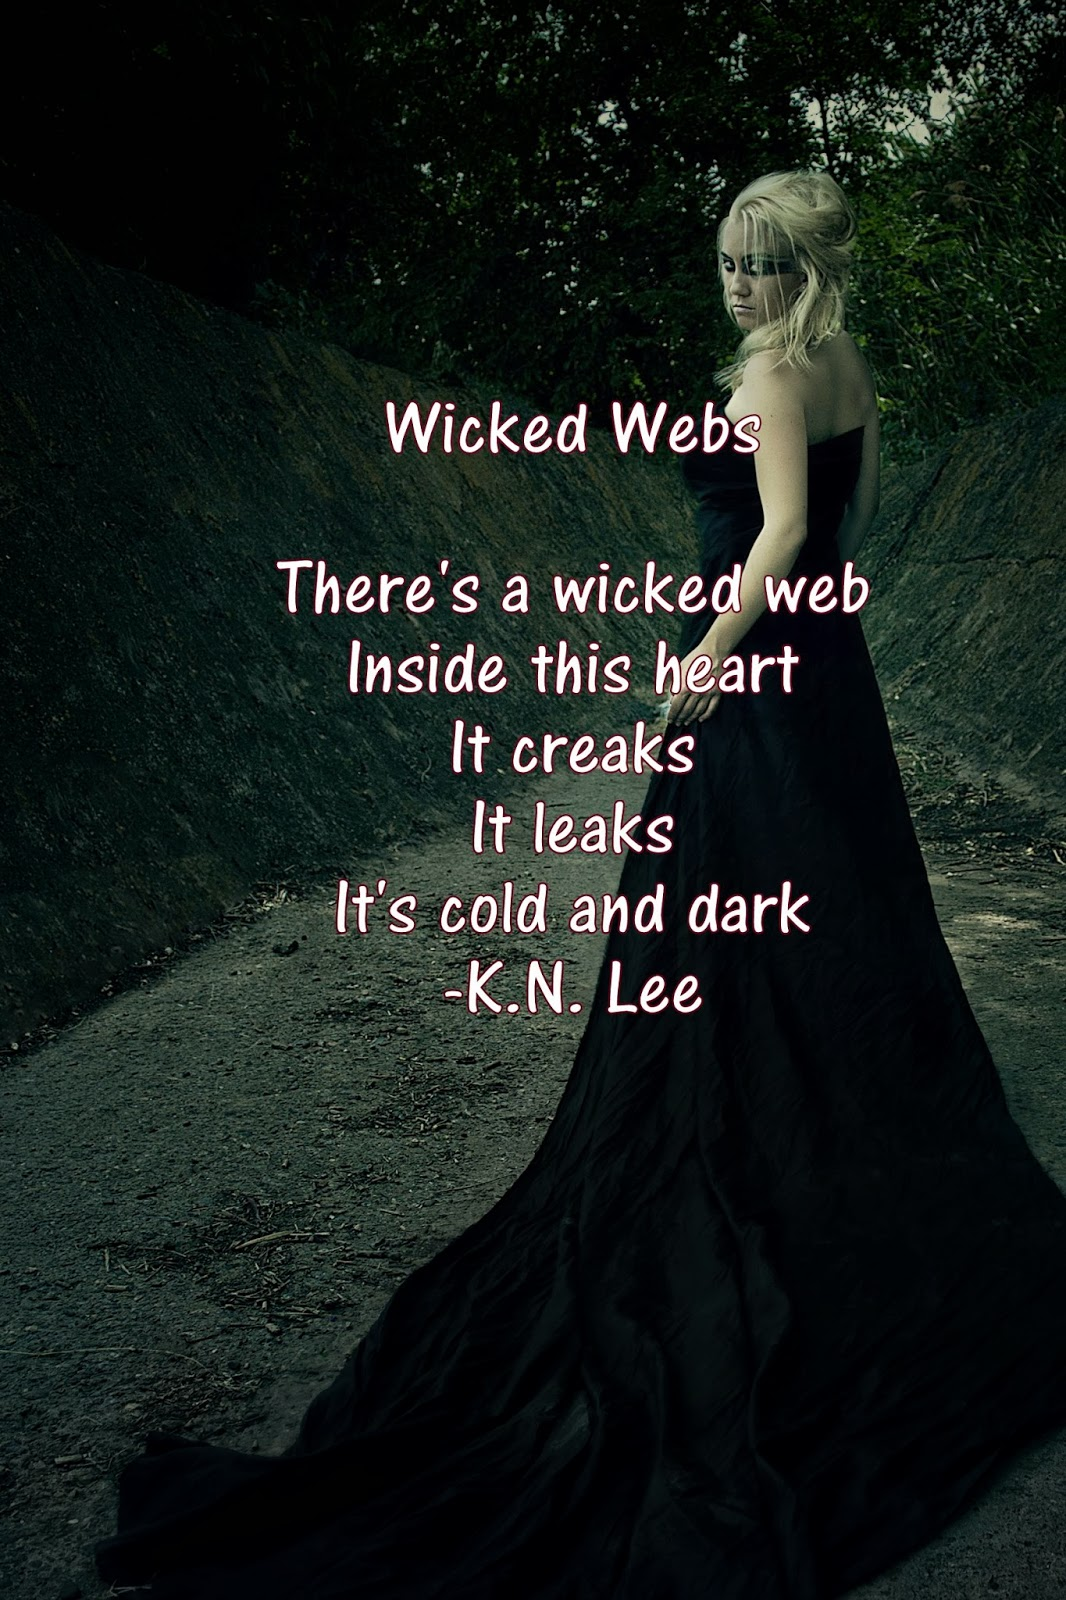 http://www.amazon.com/Wicked-Webs-K-N-Lee-ebook/dp/B00D9YCZGQ/ref=pd_sim_kstore_3